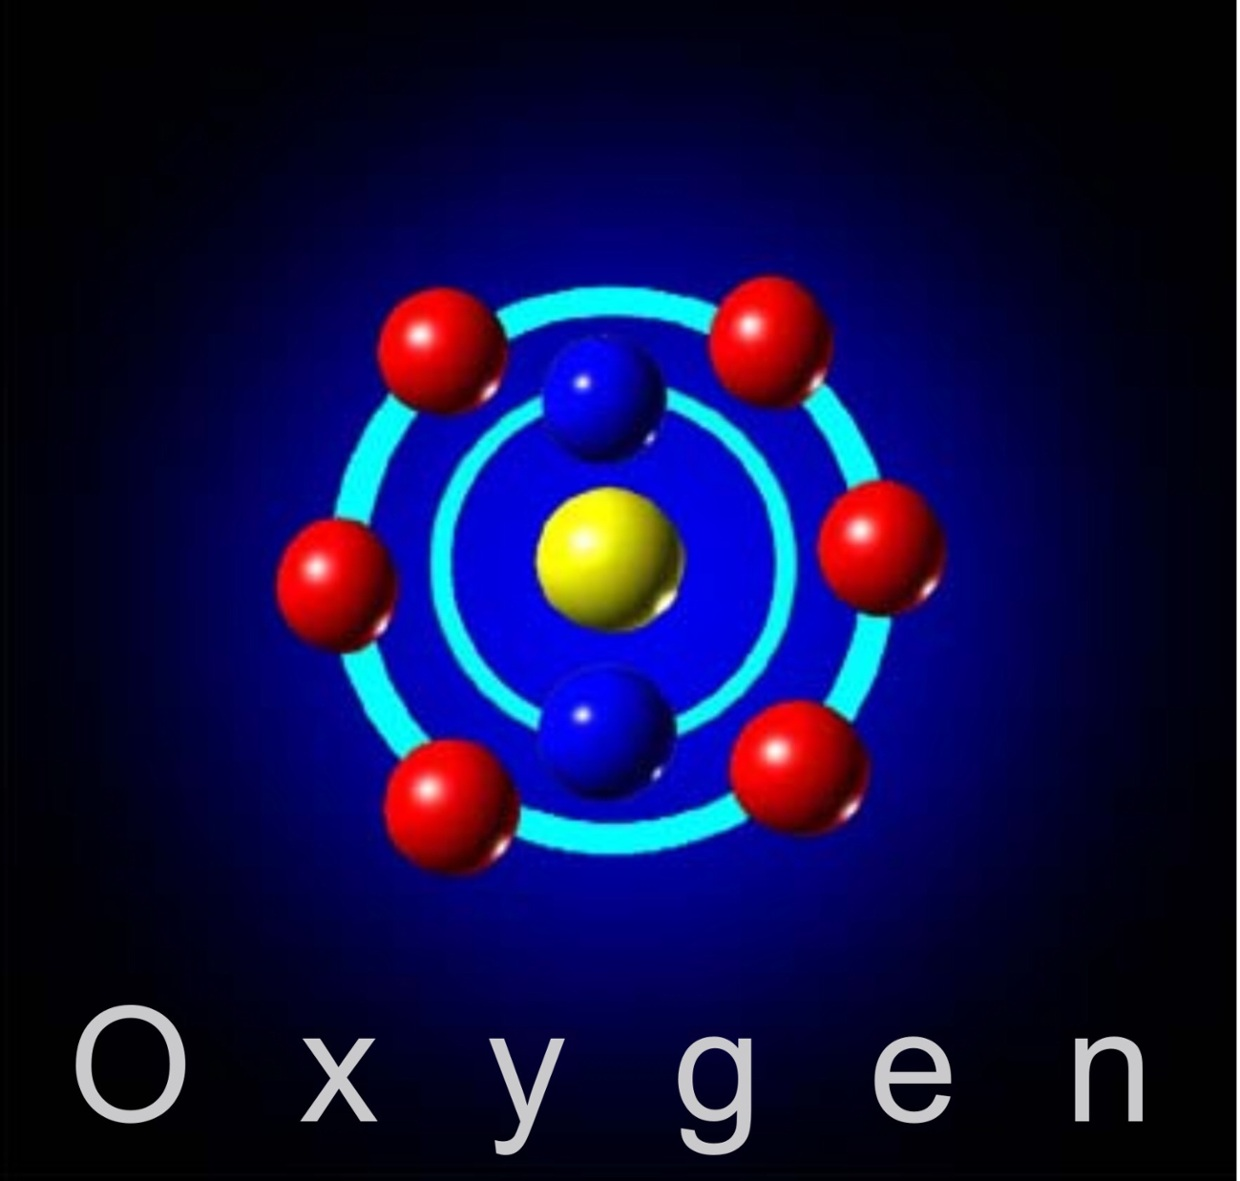 The Name Of The Element And The Symbol For Oxygen Atomi Thinglink